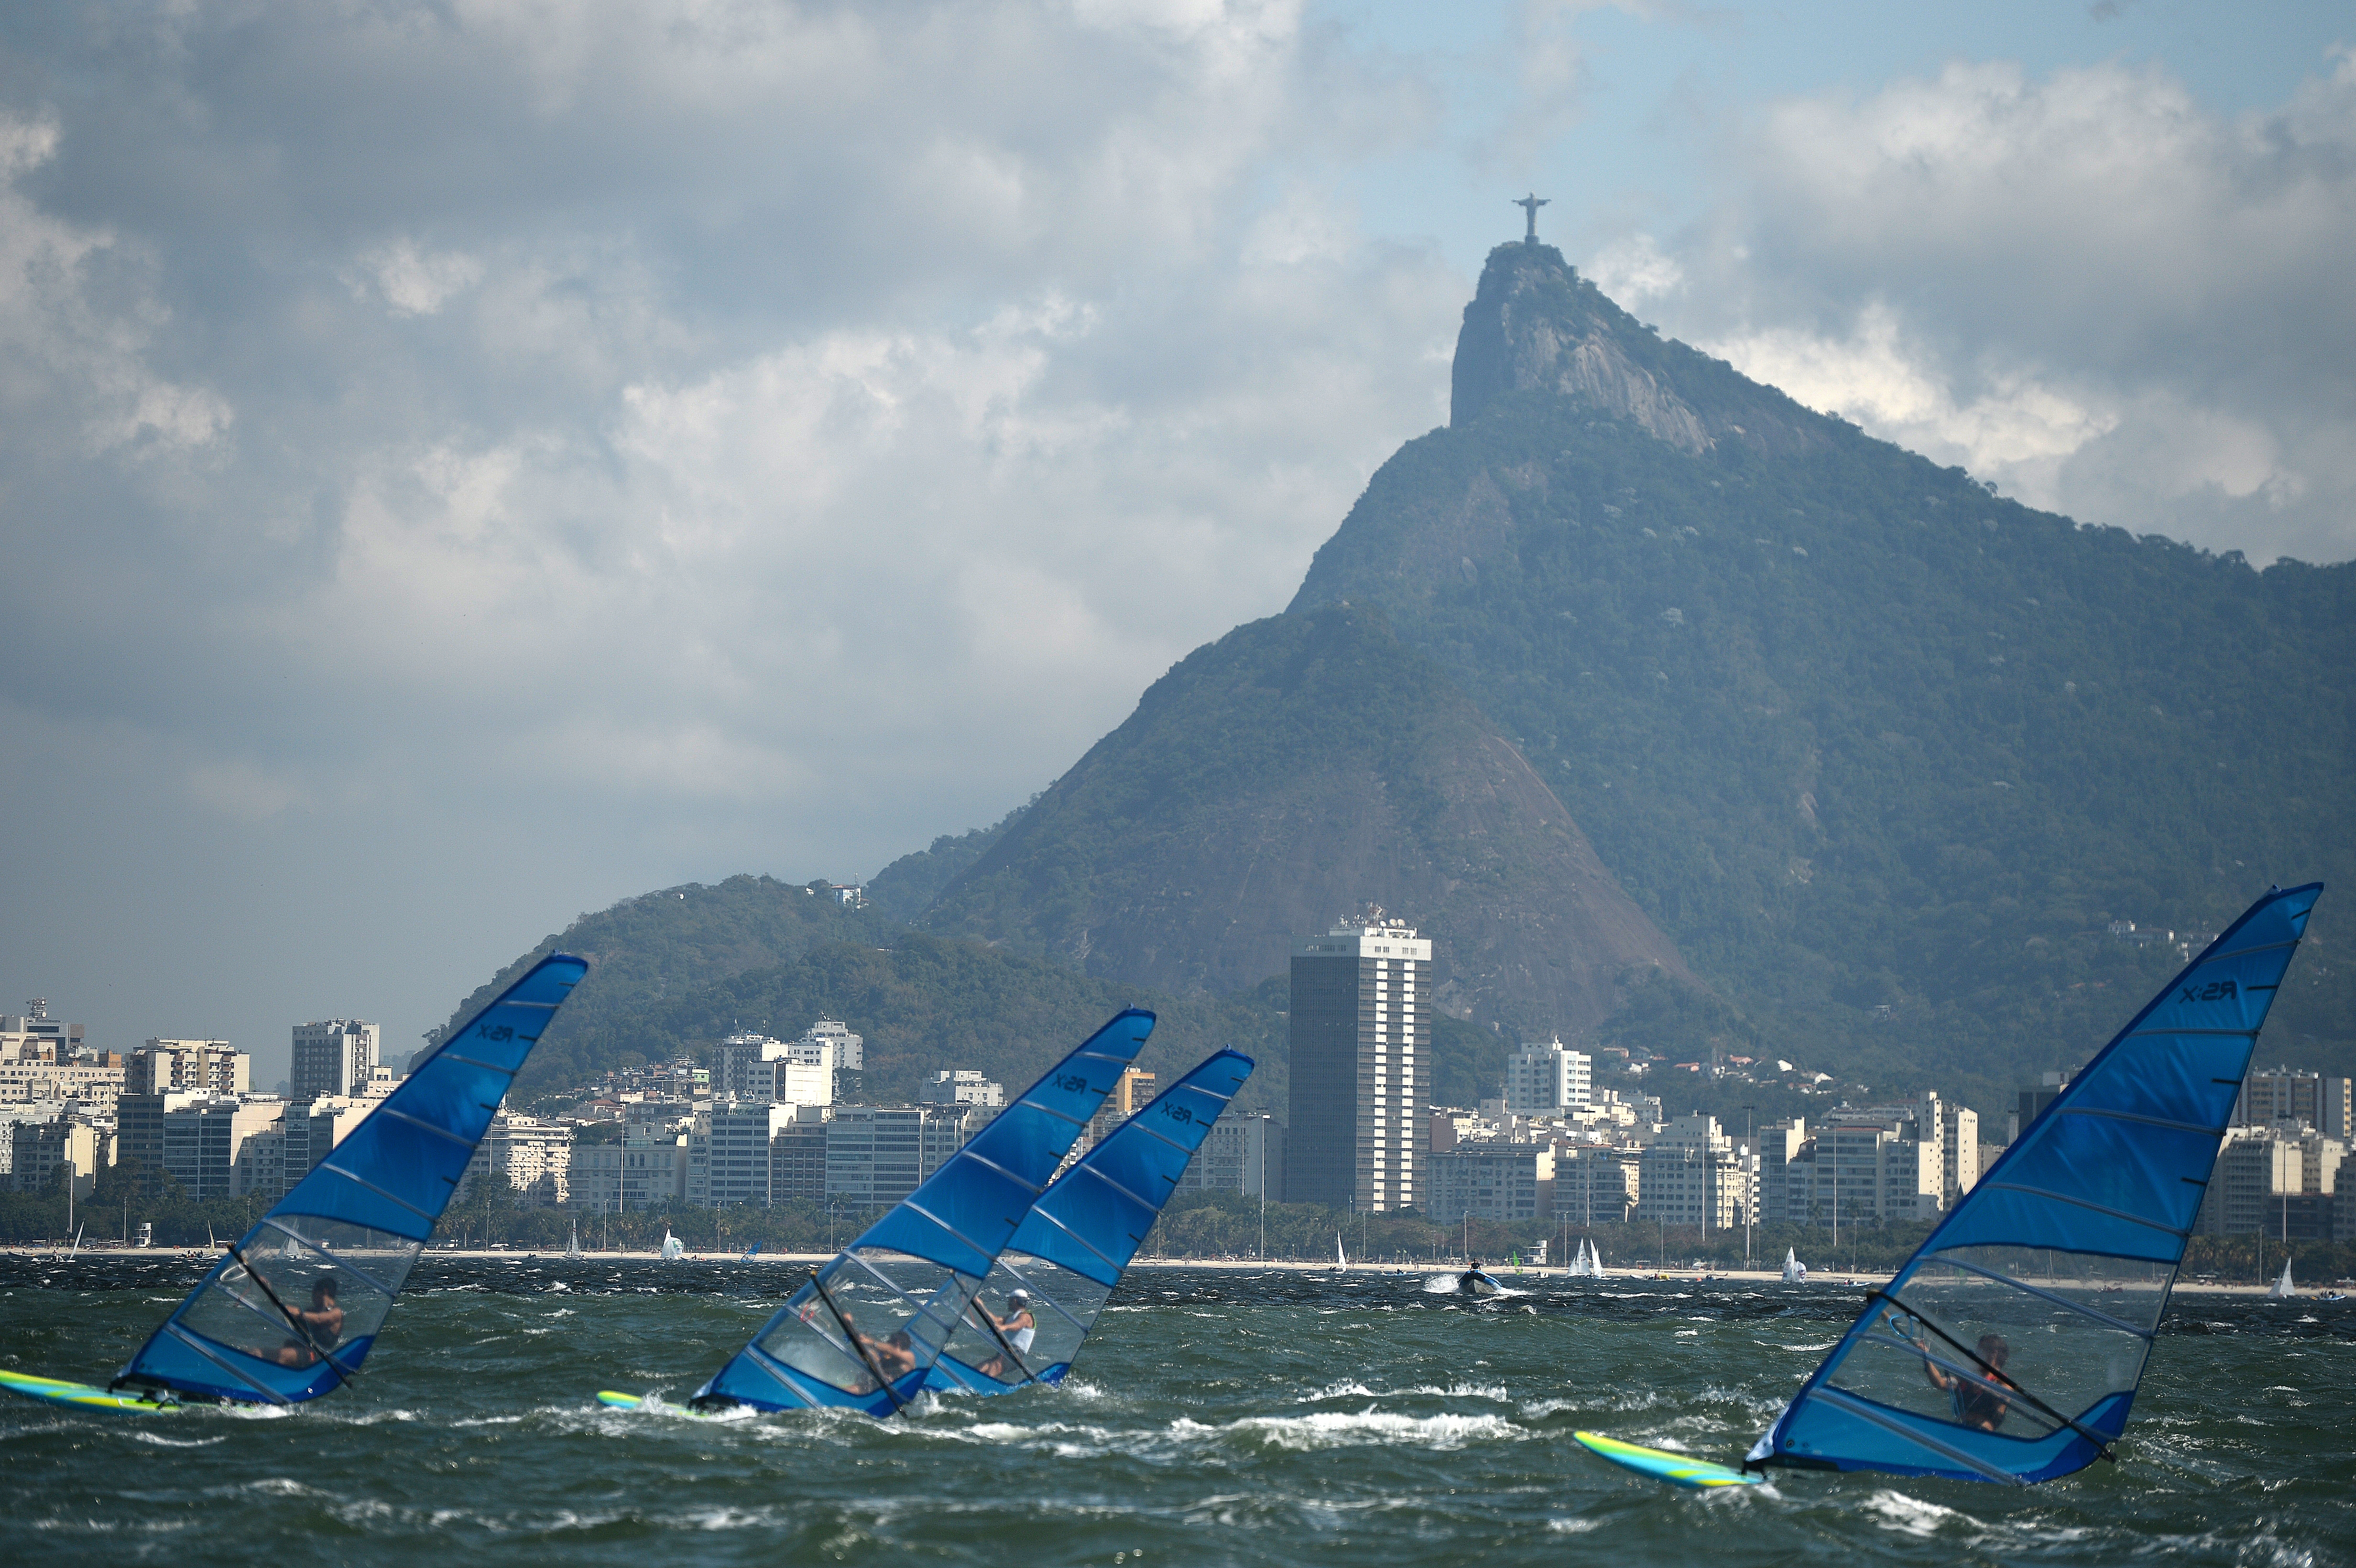 Olympic windsurfers practice at Guanabara Bay, where pollution has raised significant concerns about the health of the swimmers and sailors at the Rio Olympics.